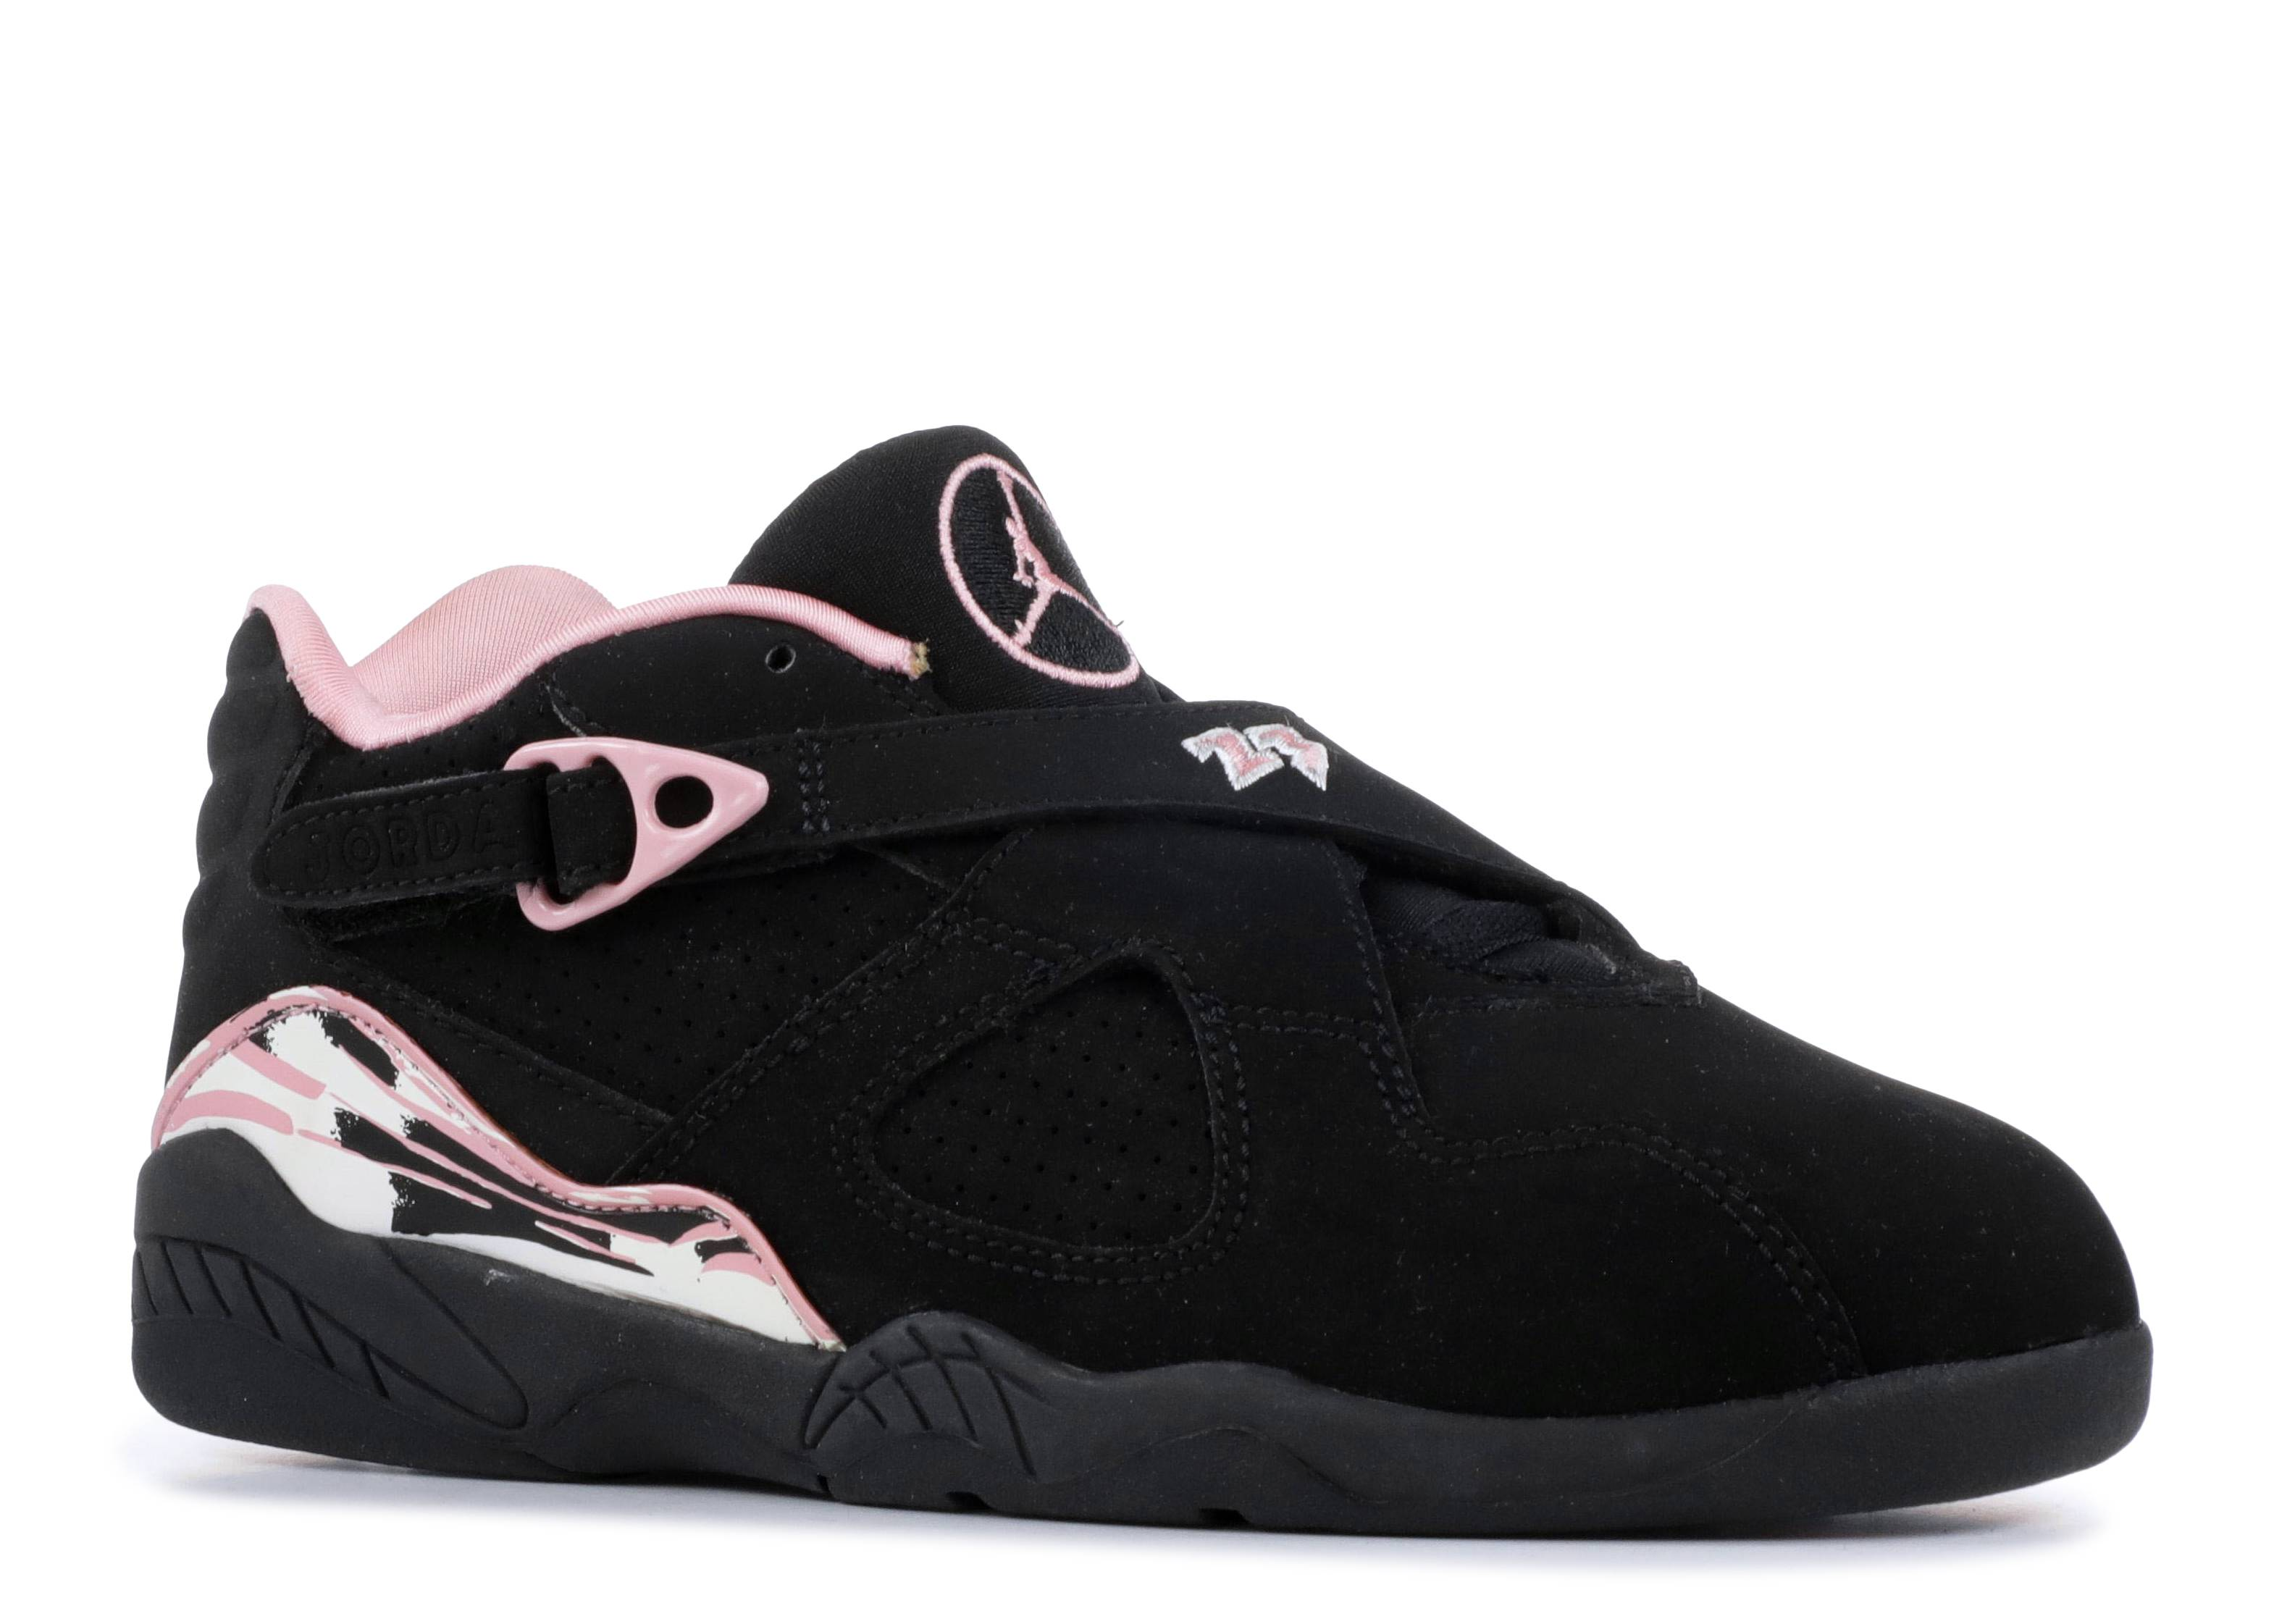 half off e0cb0 ce48c Jordan 8 Retro Low (ps) - Air Jordan - 317640 061 - black real pink-white    Flight Club